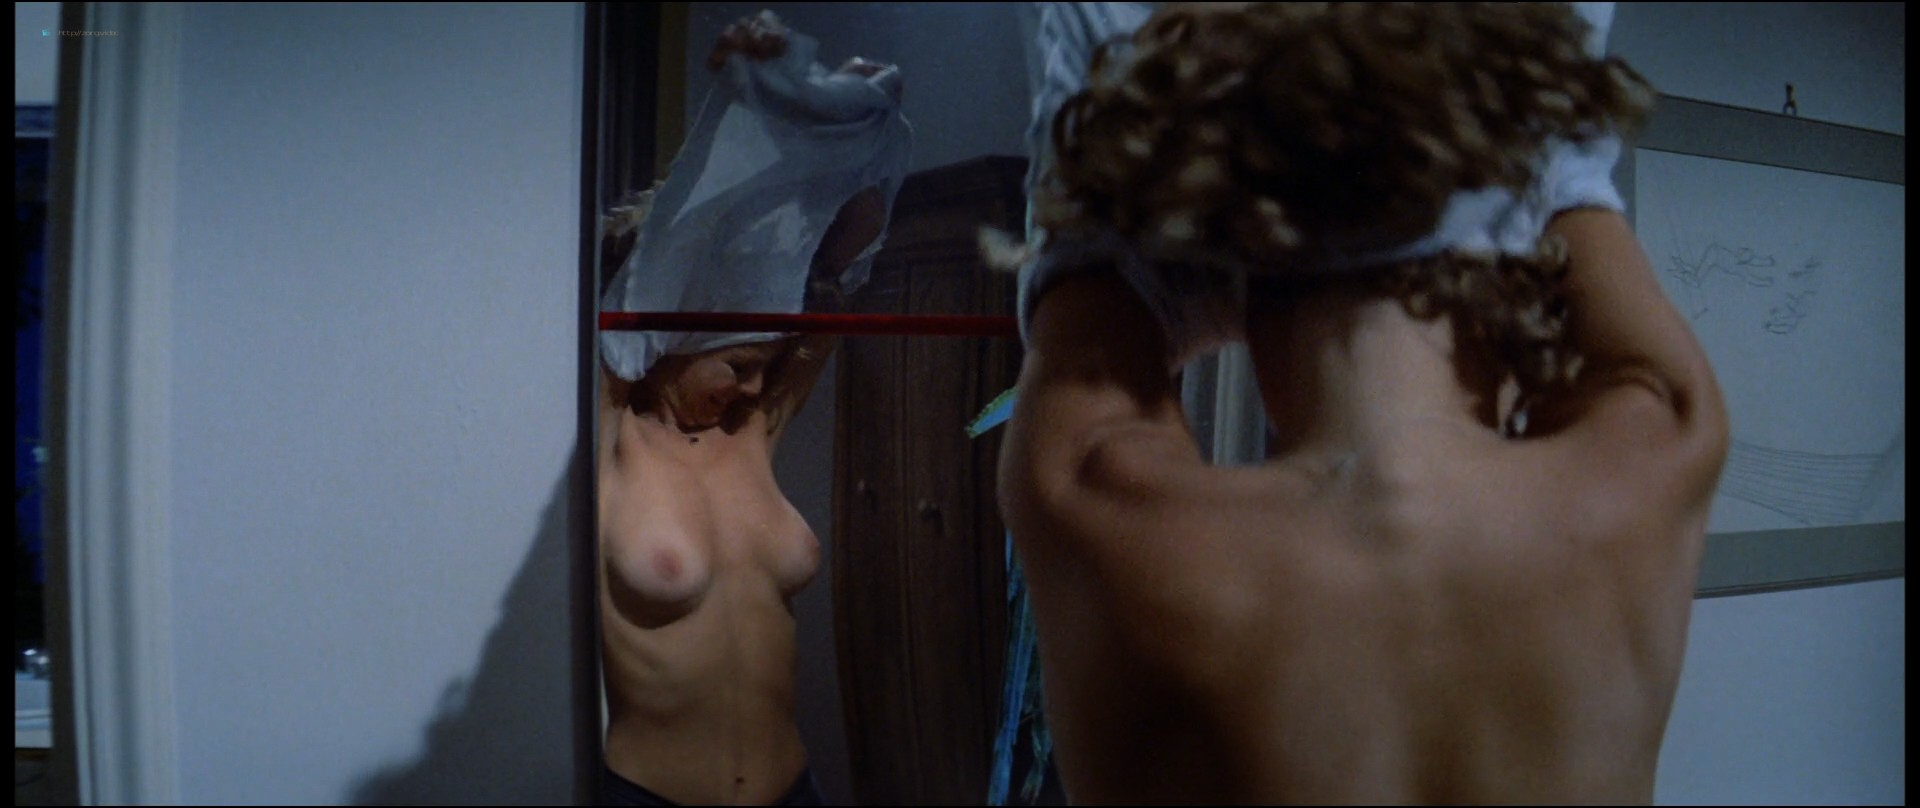 Sydne Rome nude full frontal Renate Langer, Birgitta Nilsson nude too - What? (IT-1972) 1080p BluRay (17)